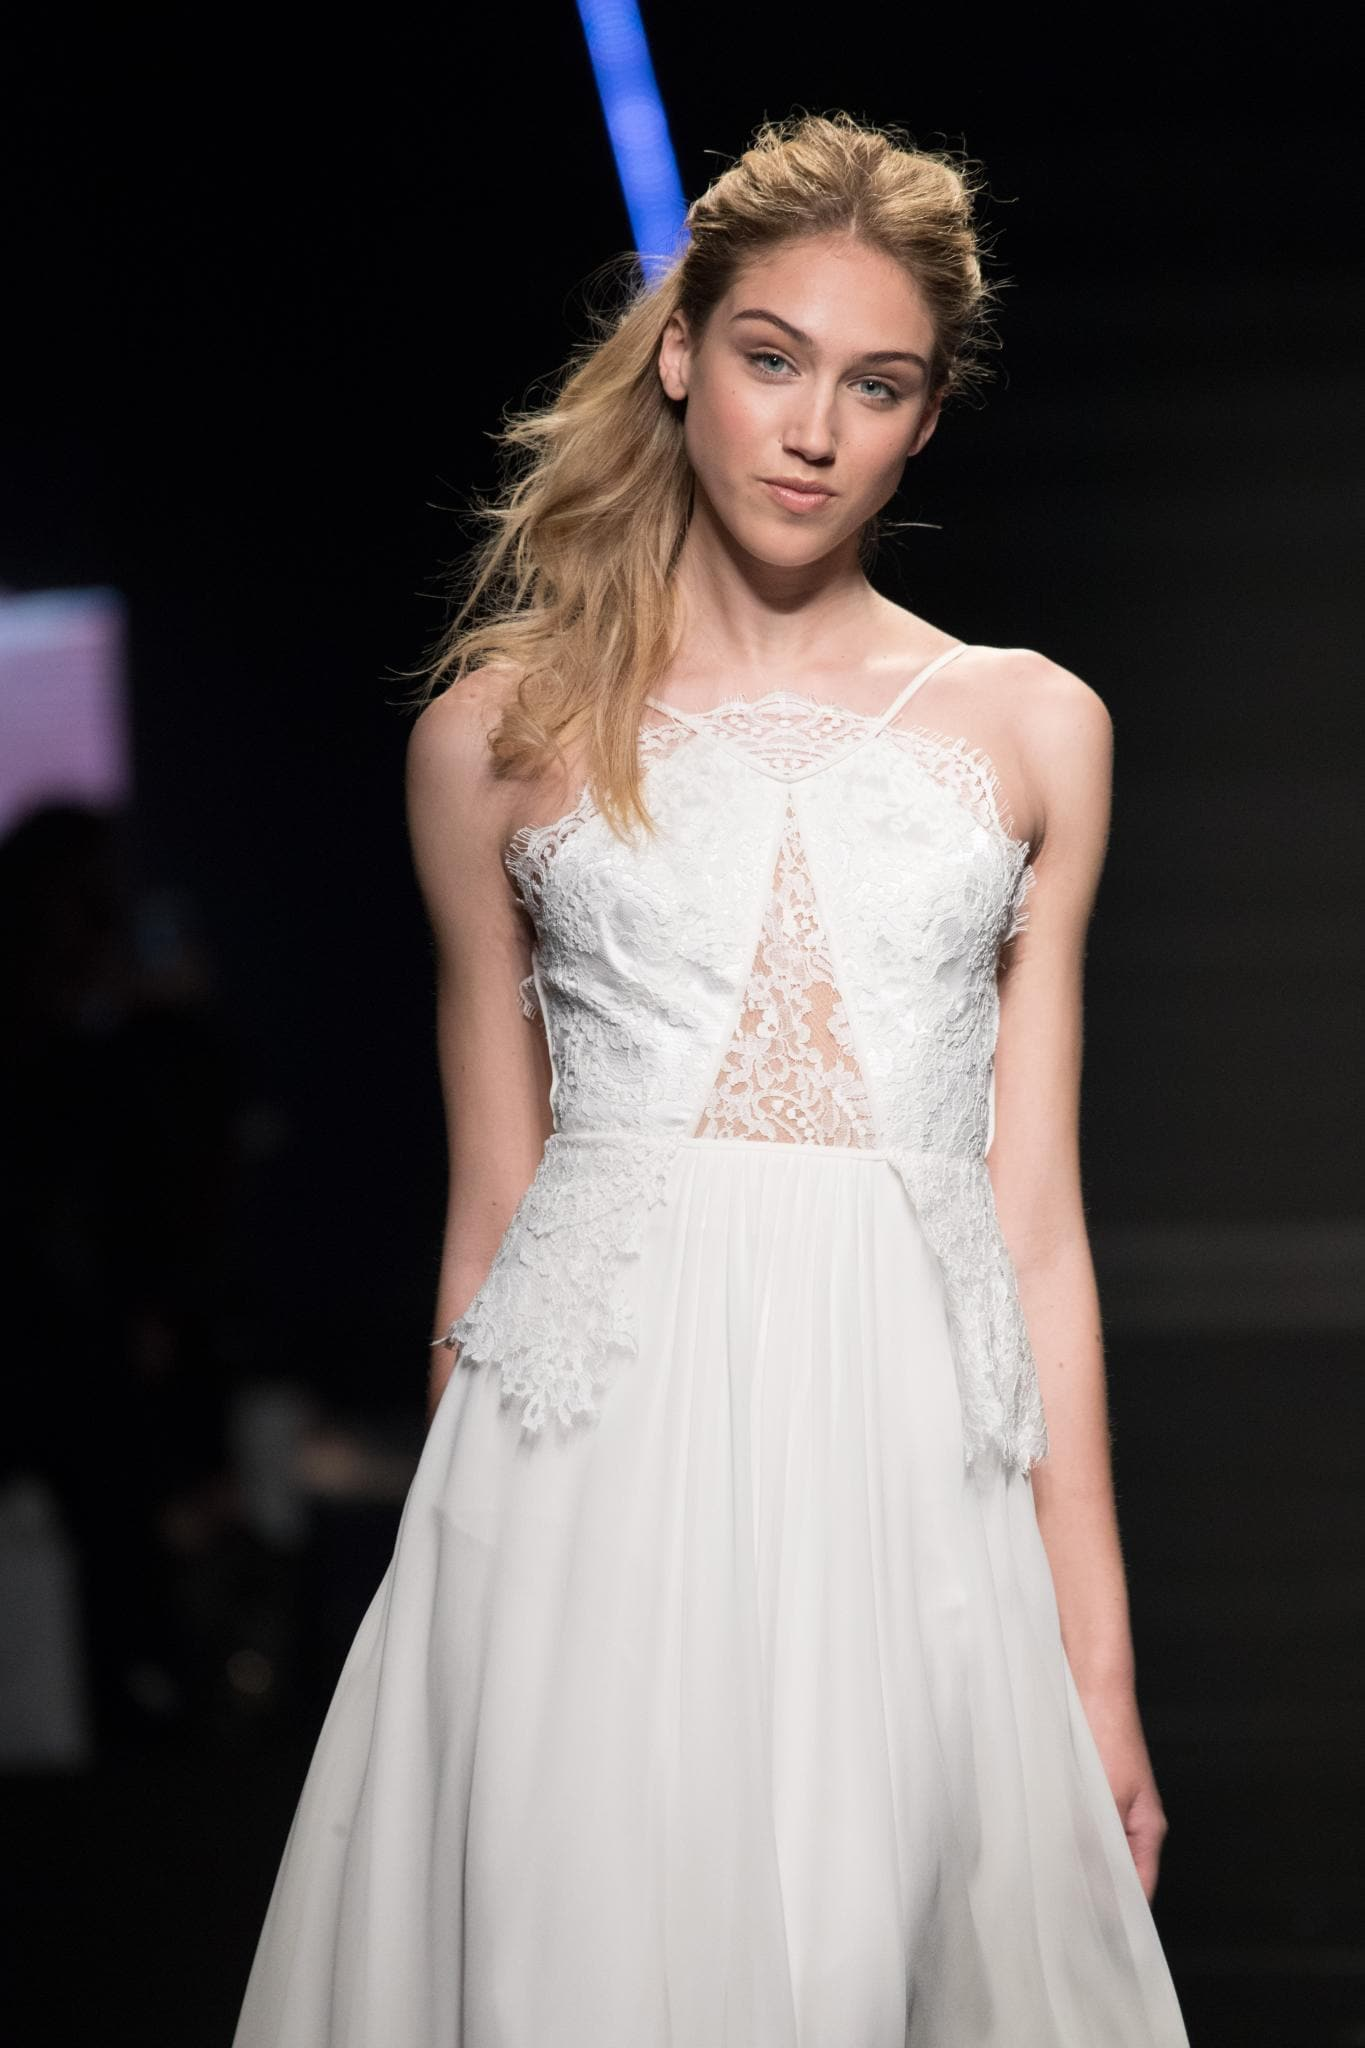 model on bridal runway with long dirty blonde hair in textured high ponytail with ends swept over one shoulder wearing wedding dress